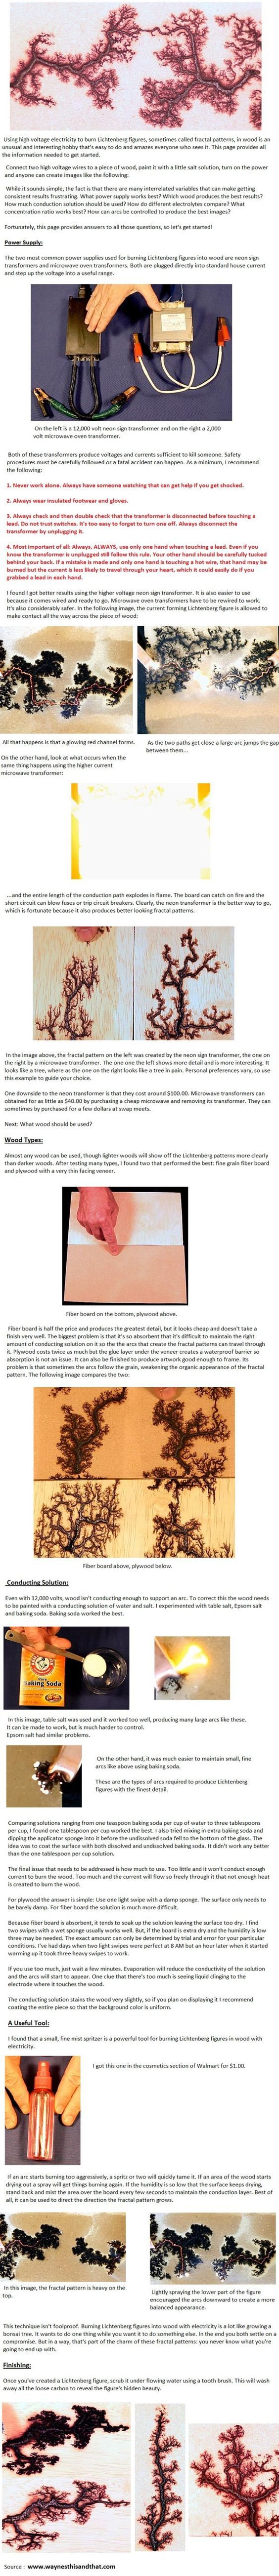 Fractal Lichtenberg Figure Wood Burning With Electricity By waynesthisandthat.com: